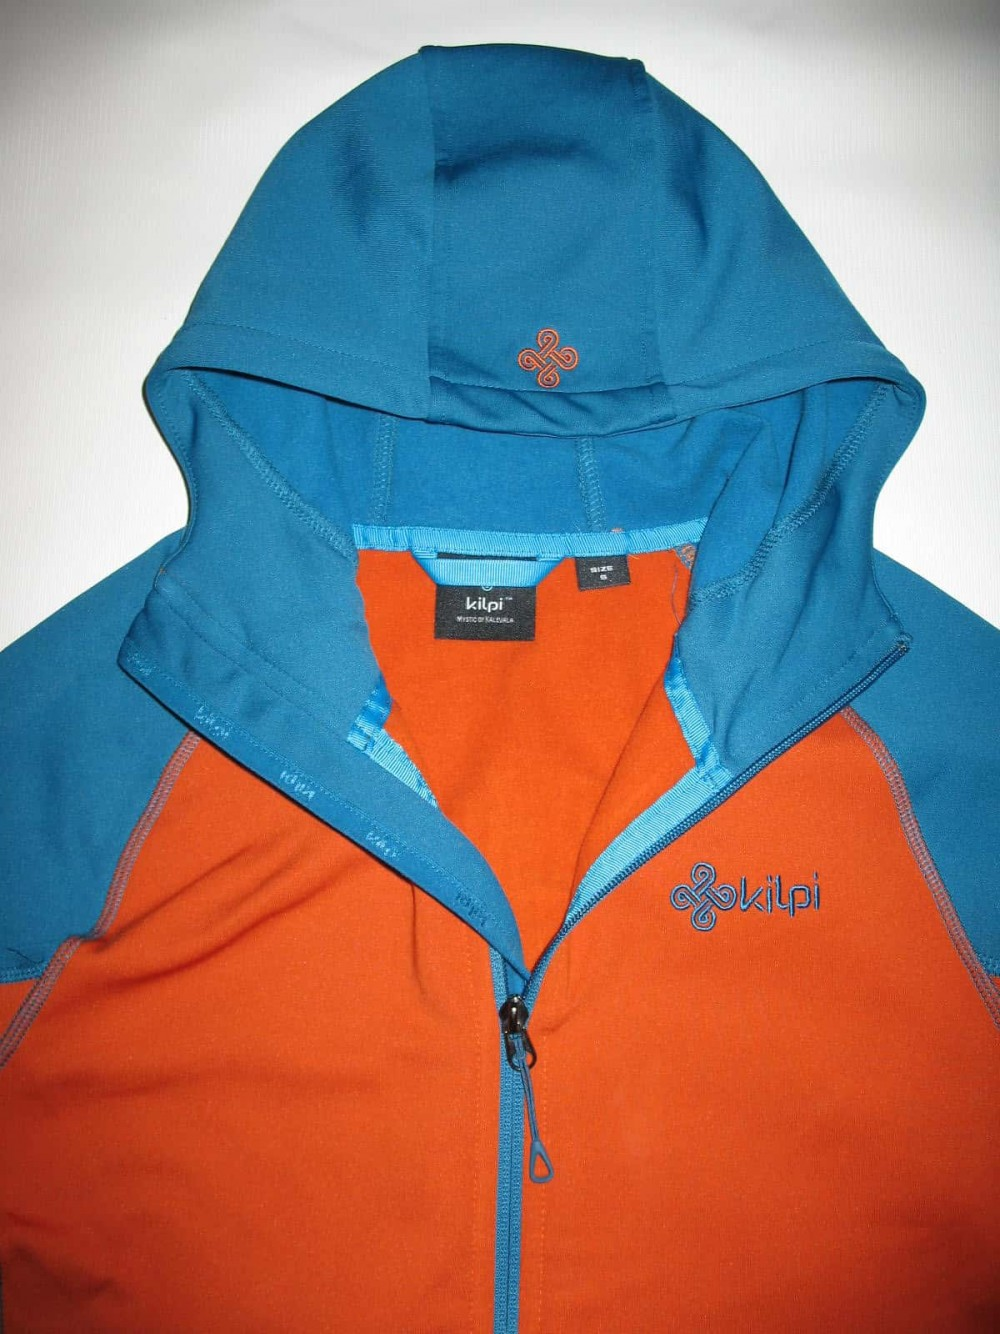 Кофта KILPI yoho-m fleece hoodies jacket (размер S) - 7